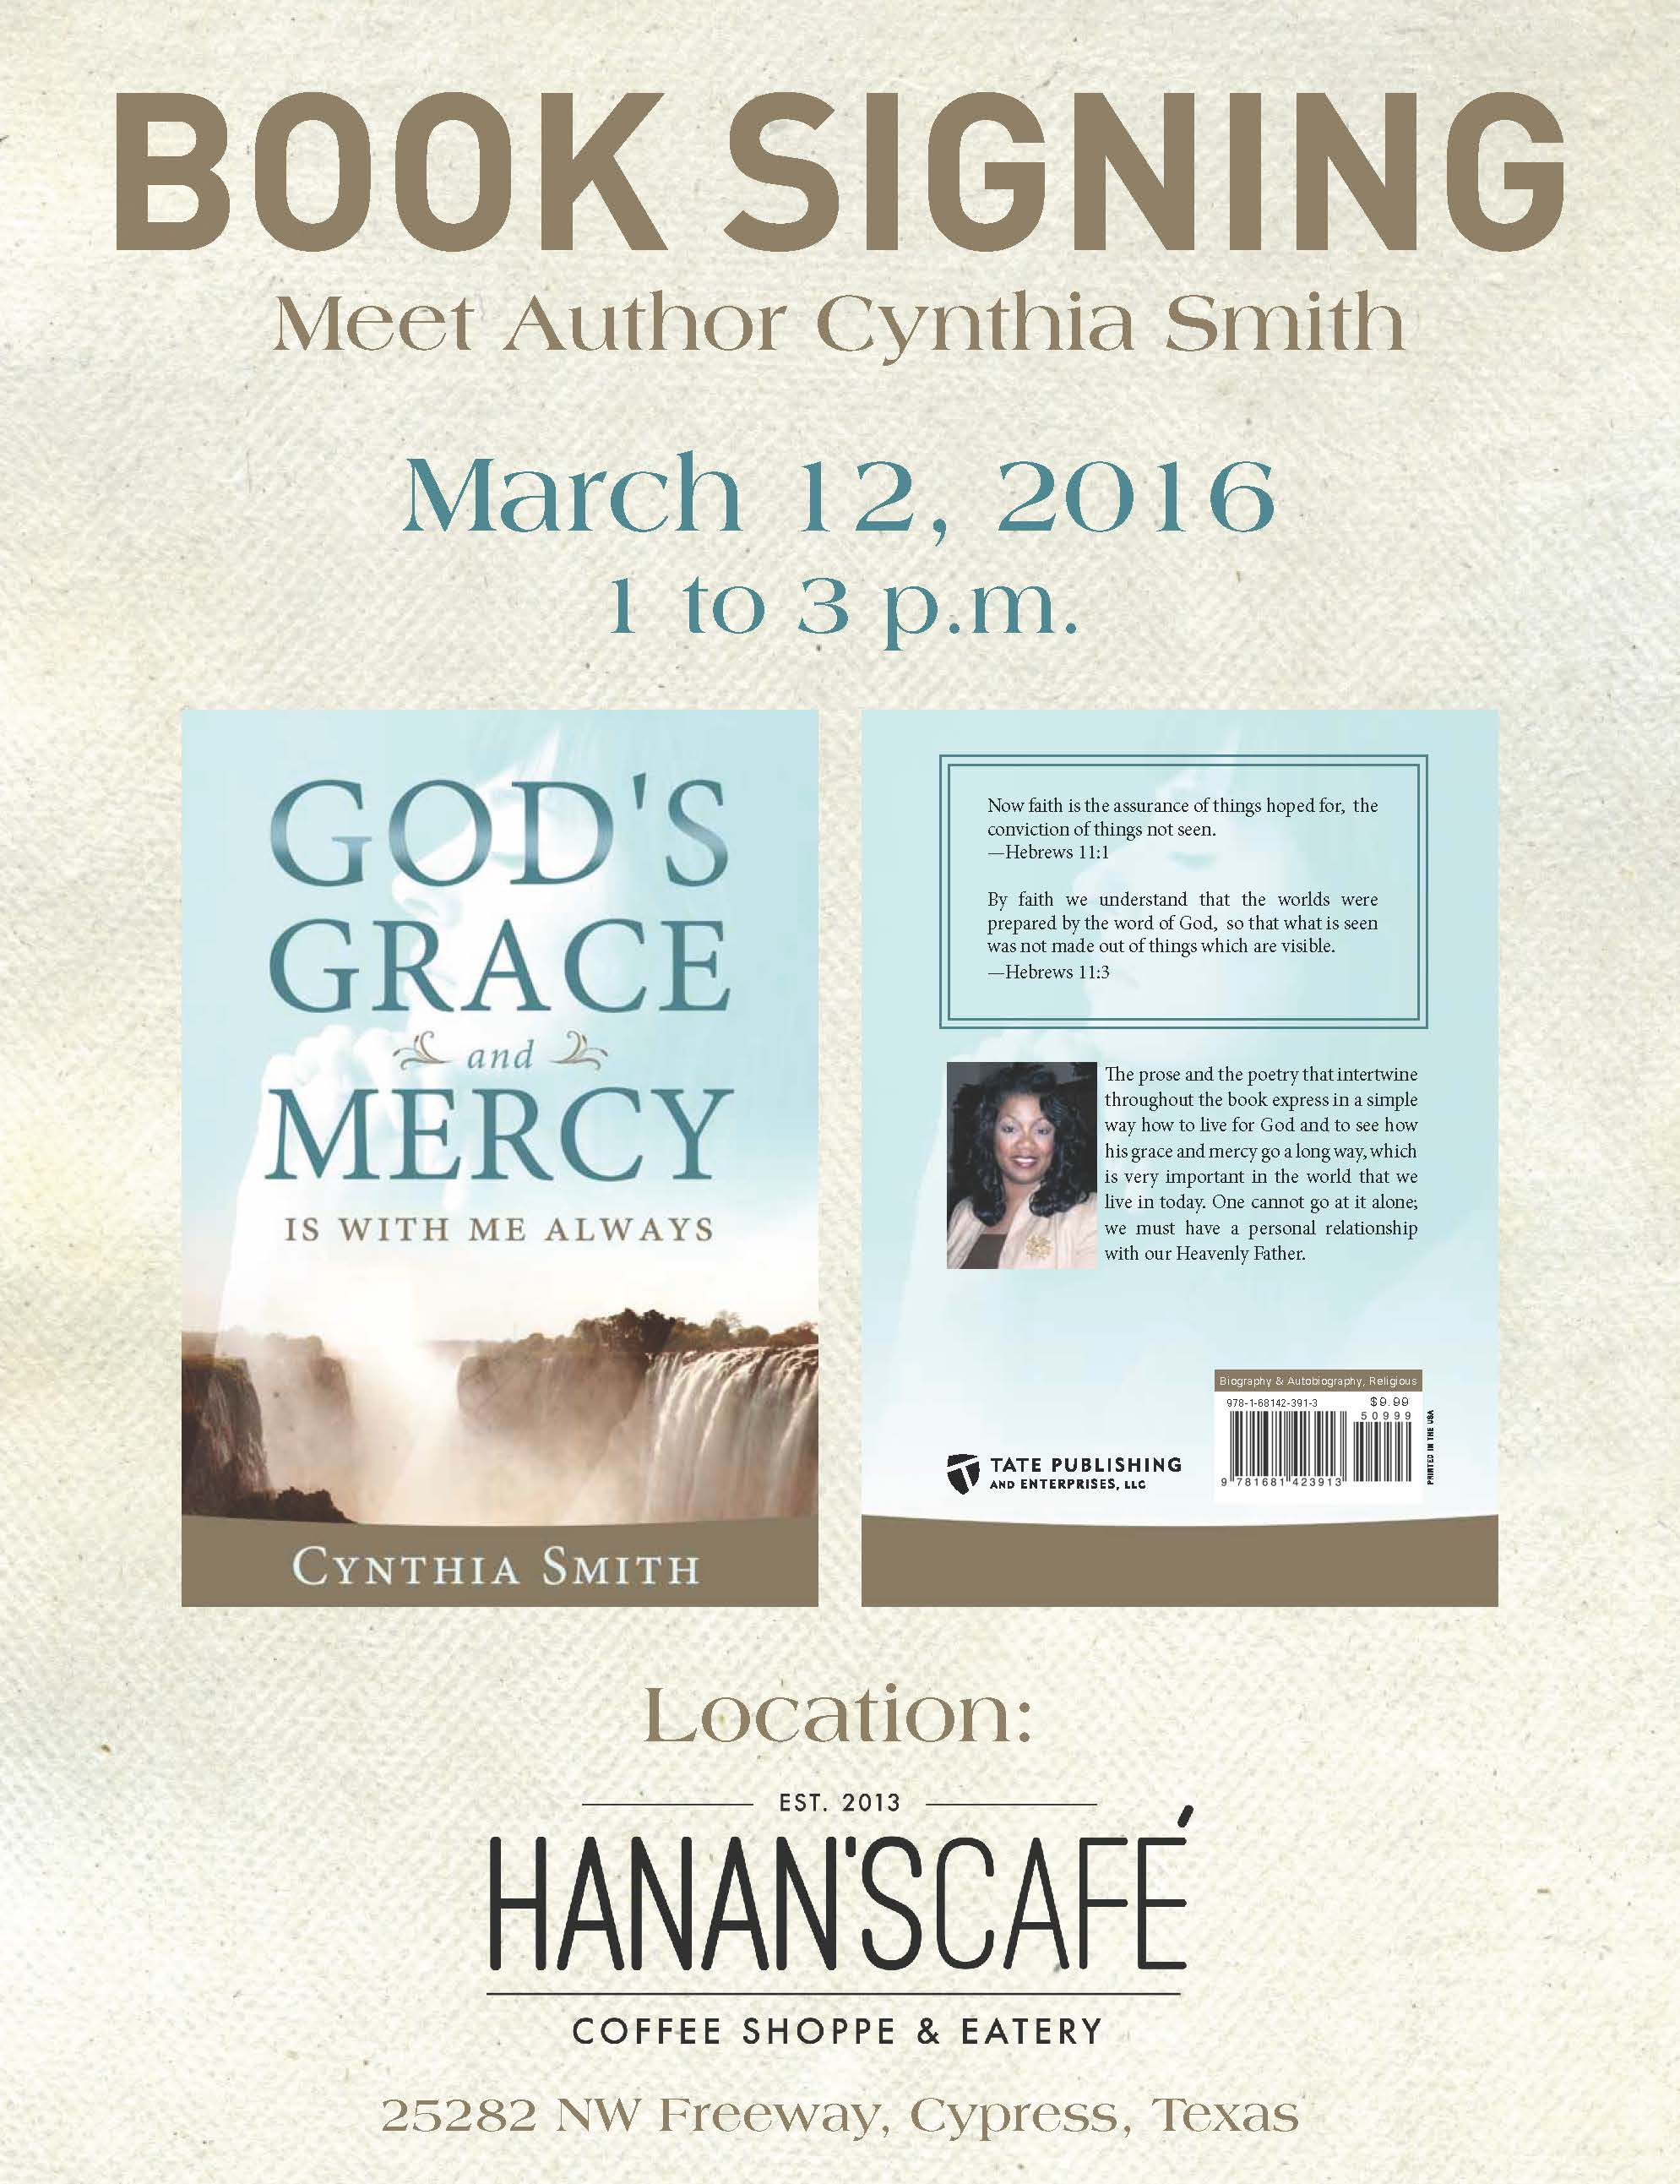 Book Signing March 12, 2016 – Meet Cynthia Smith!